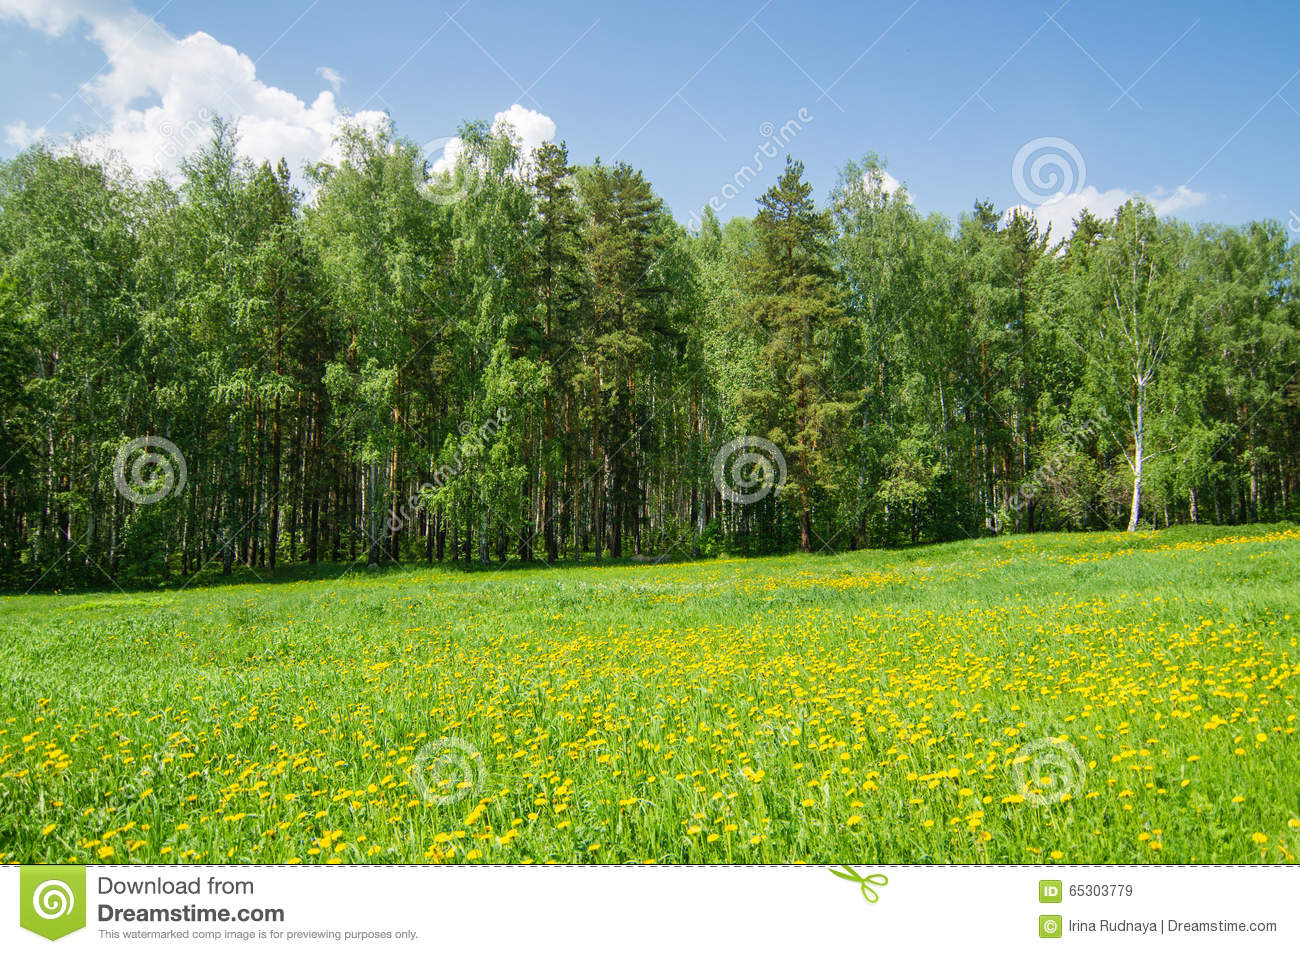 Natural areas of the Urals: a table and a description